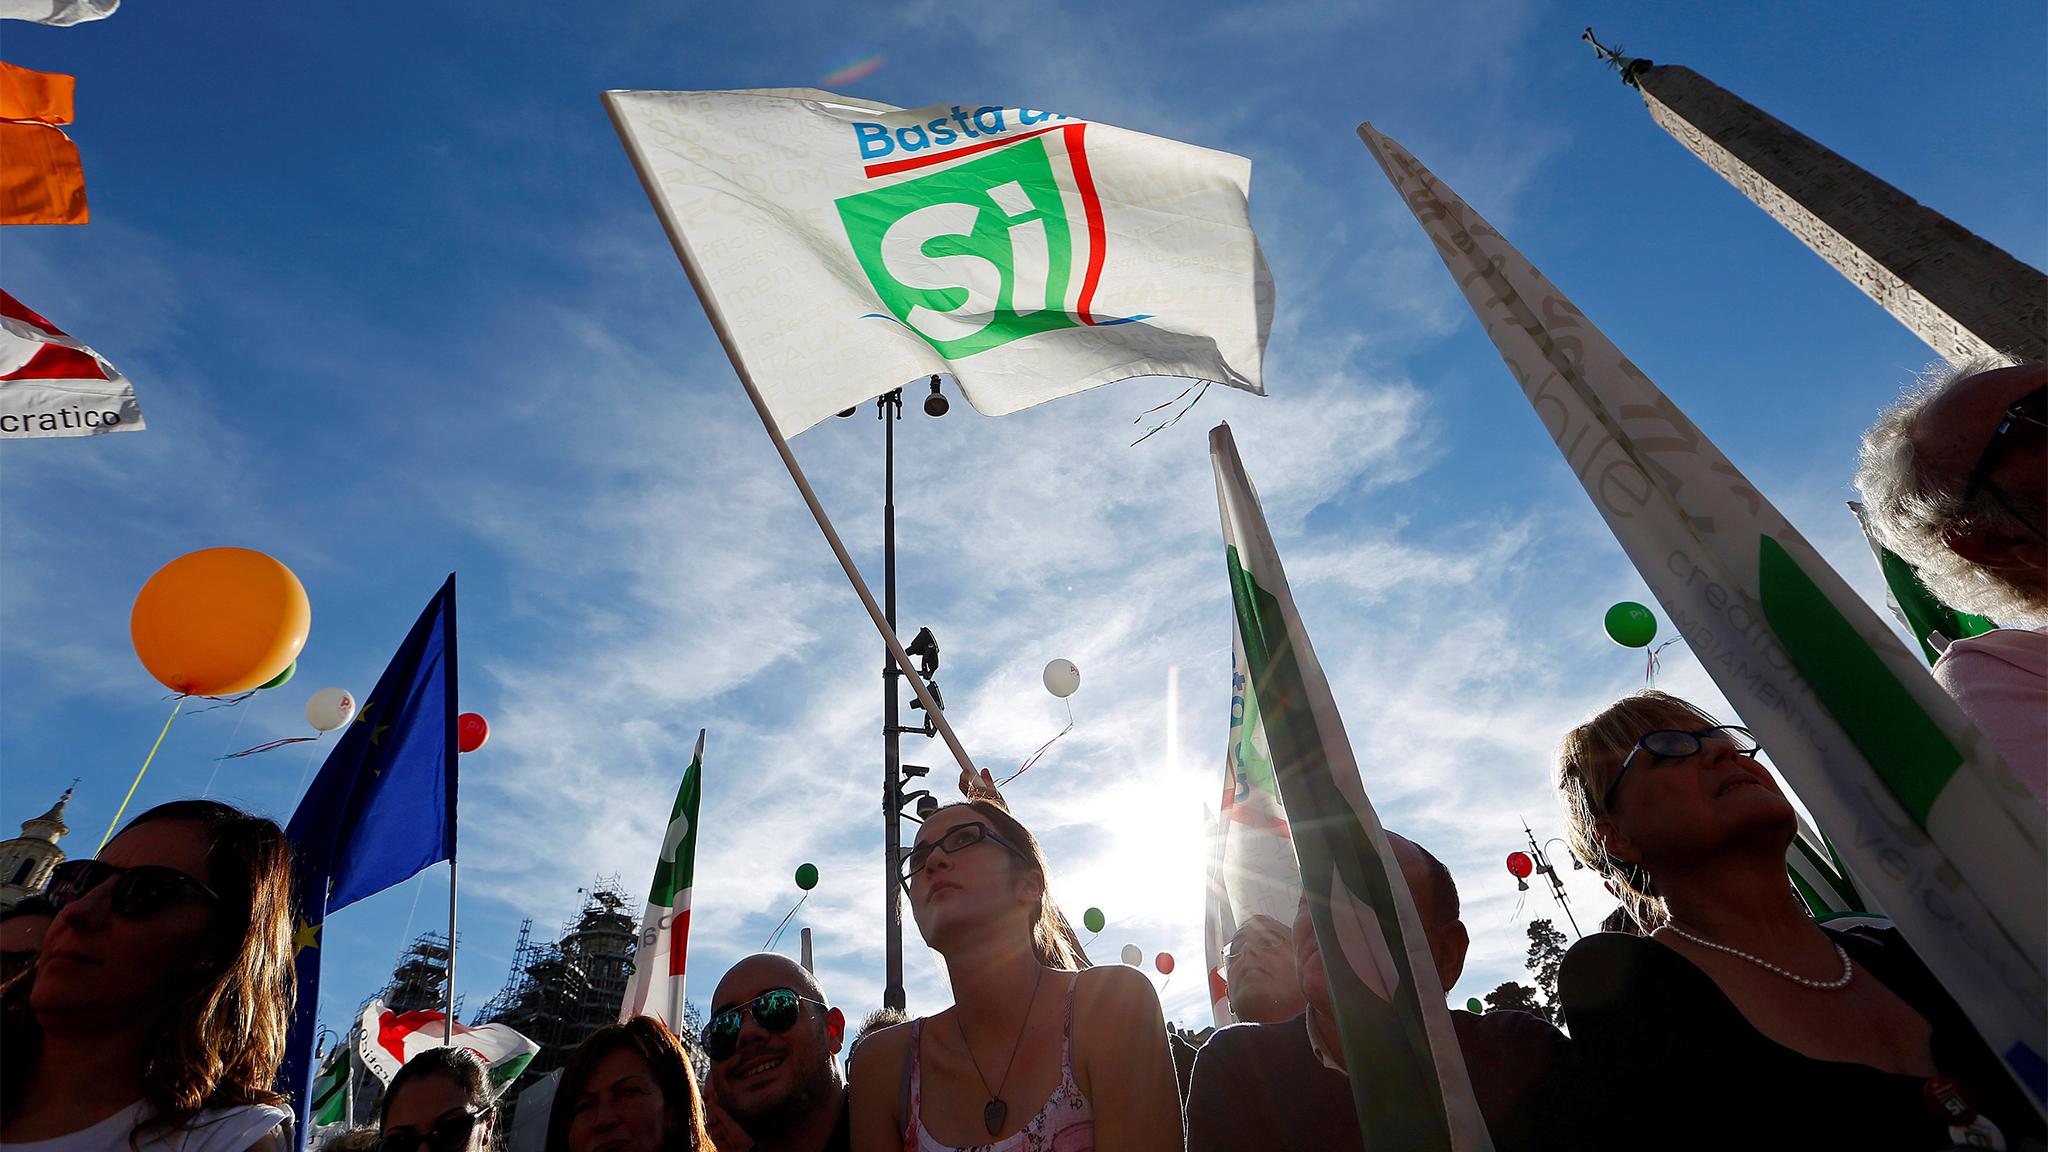 Supporters wave flags during a rally led by Italian PM Renzi in downtown Rome